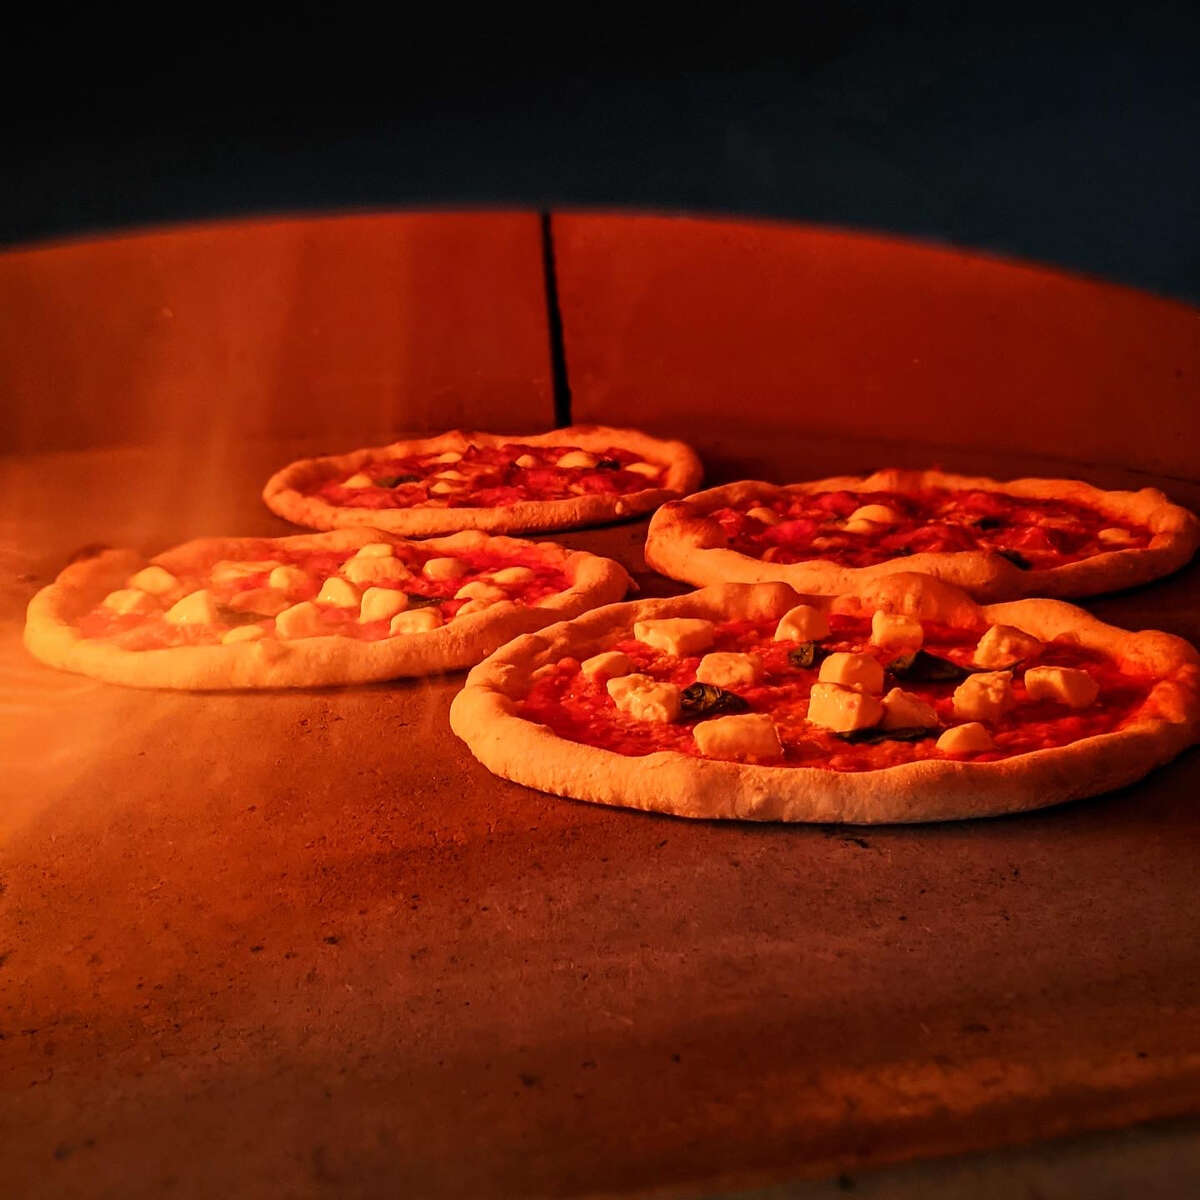 Inside the wood-fired pizza oven at Nic's Trattoria in East Greenbush. (Photo by Drew Harris/Nic's Trattoria.)